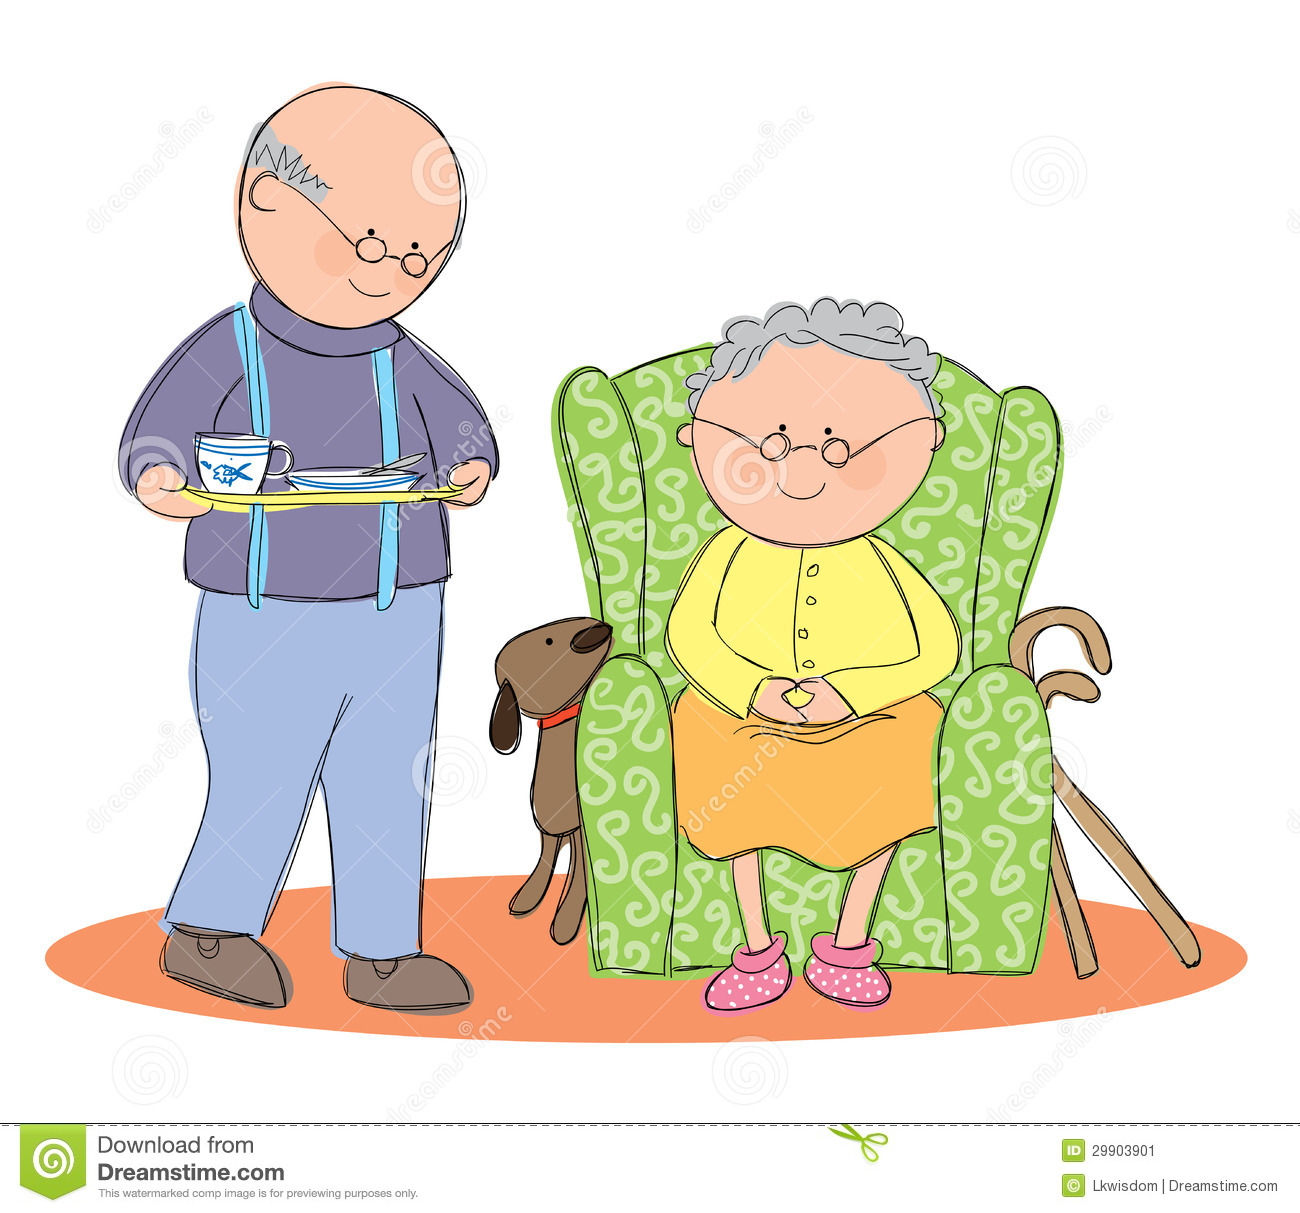 Hand Drawn Picture Of An Old Man Providing Home Care For His Wife.